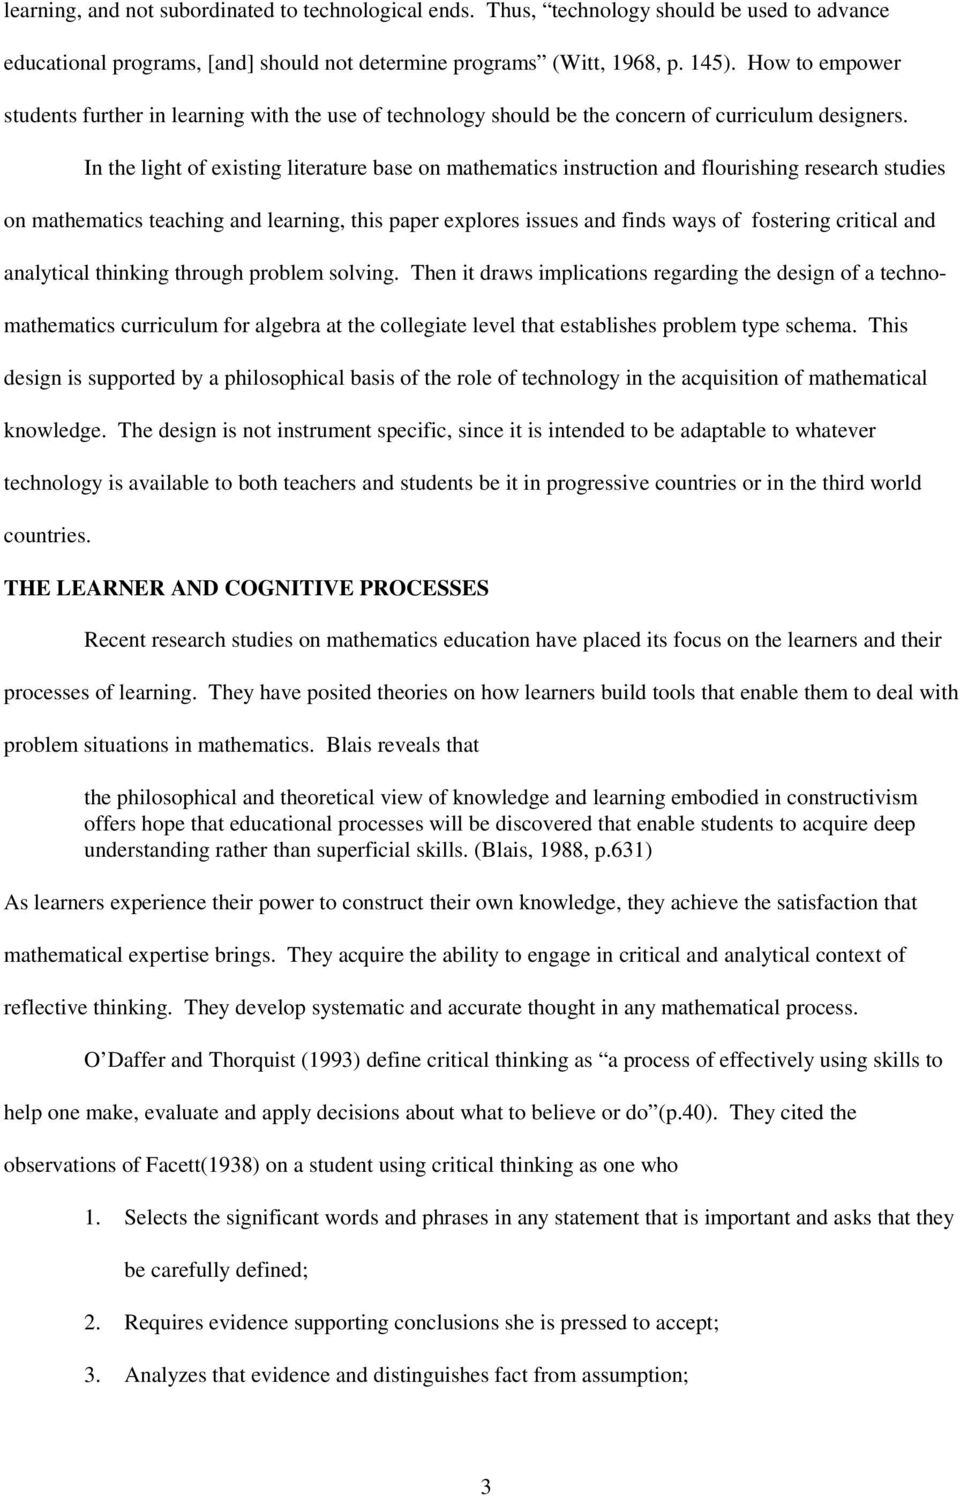 In the light of existing literature base on mathematics instruction and flourishing research studies on mathematics teaching and learning, this paper explores issues and finds ways of fostering